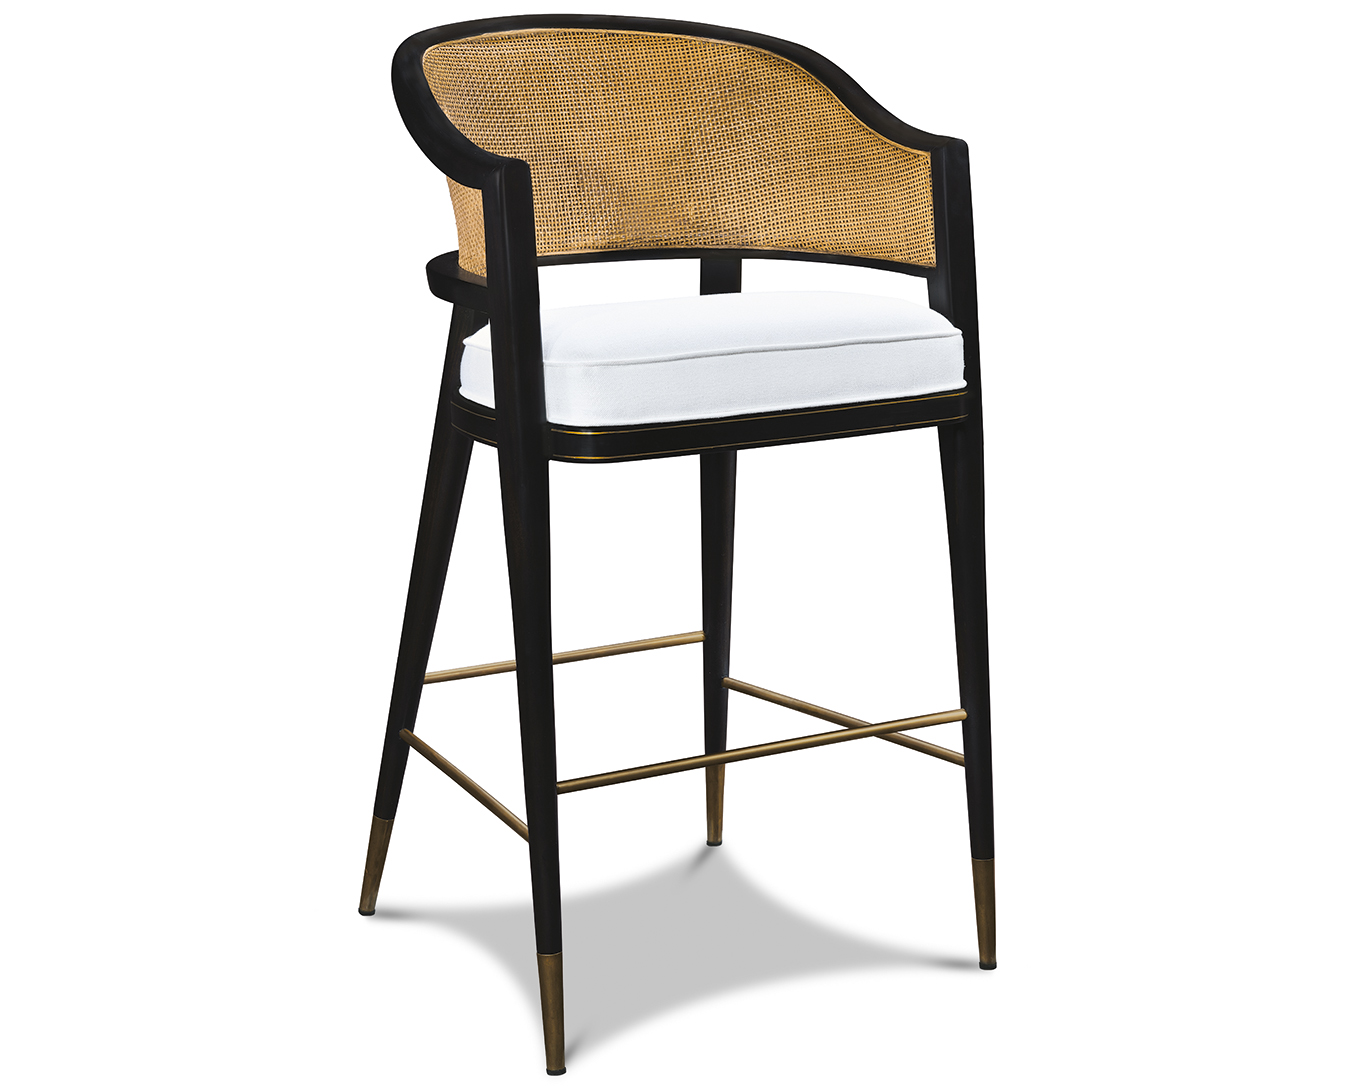 GRASSE II BAR STOOL